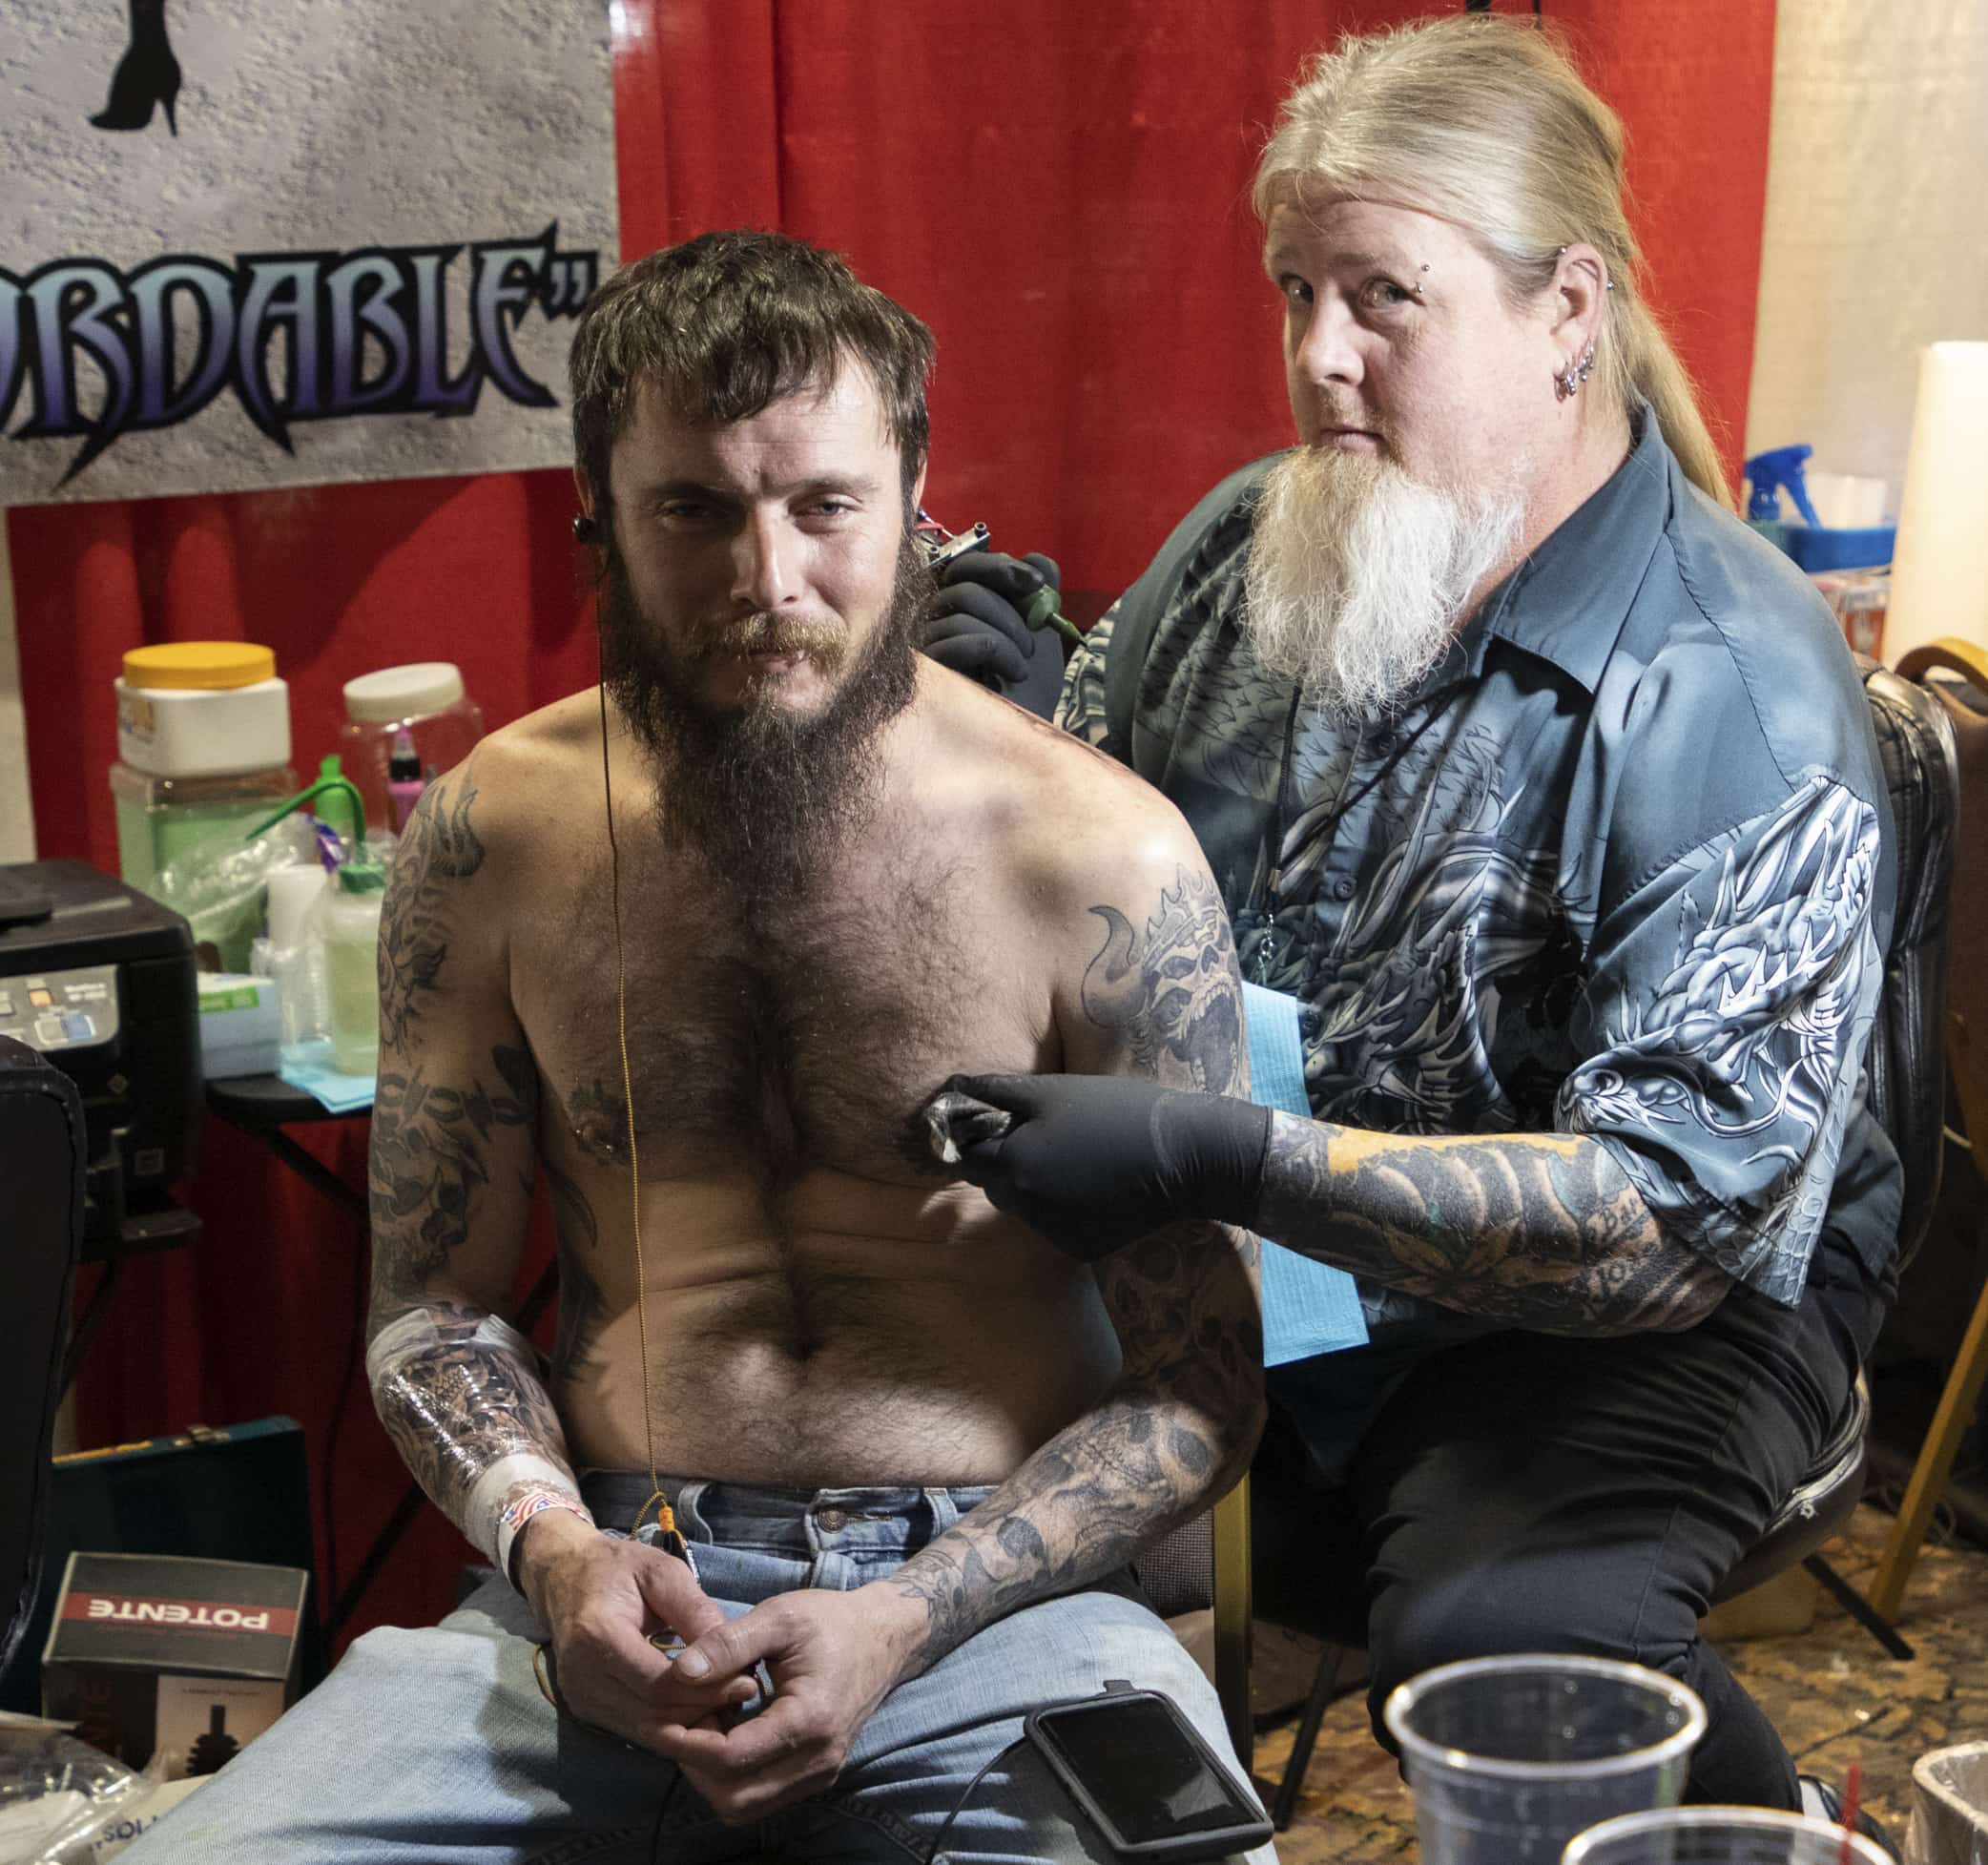 Over 100 international and local tattoo artists took part in the 33rd Annual Am-Jam Tattoo Exposition. (Photo by Romy Weidner)